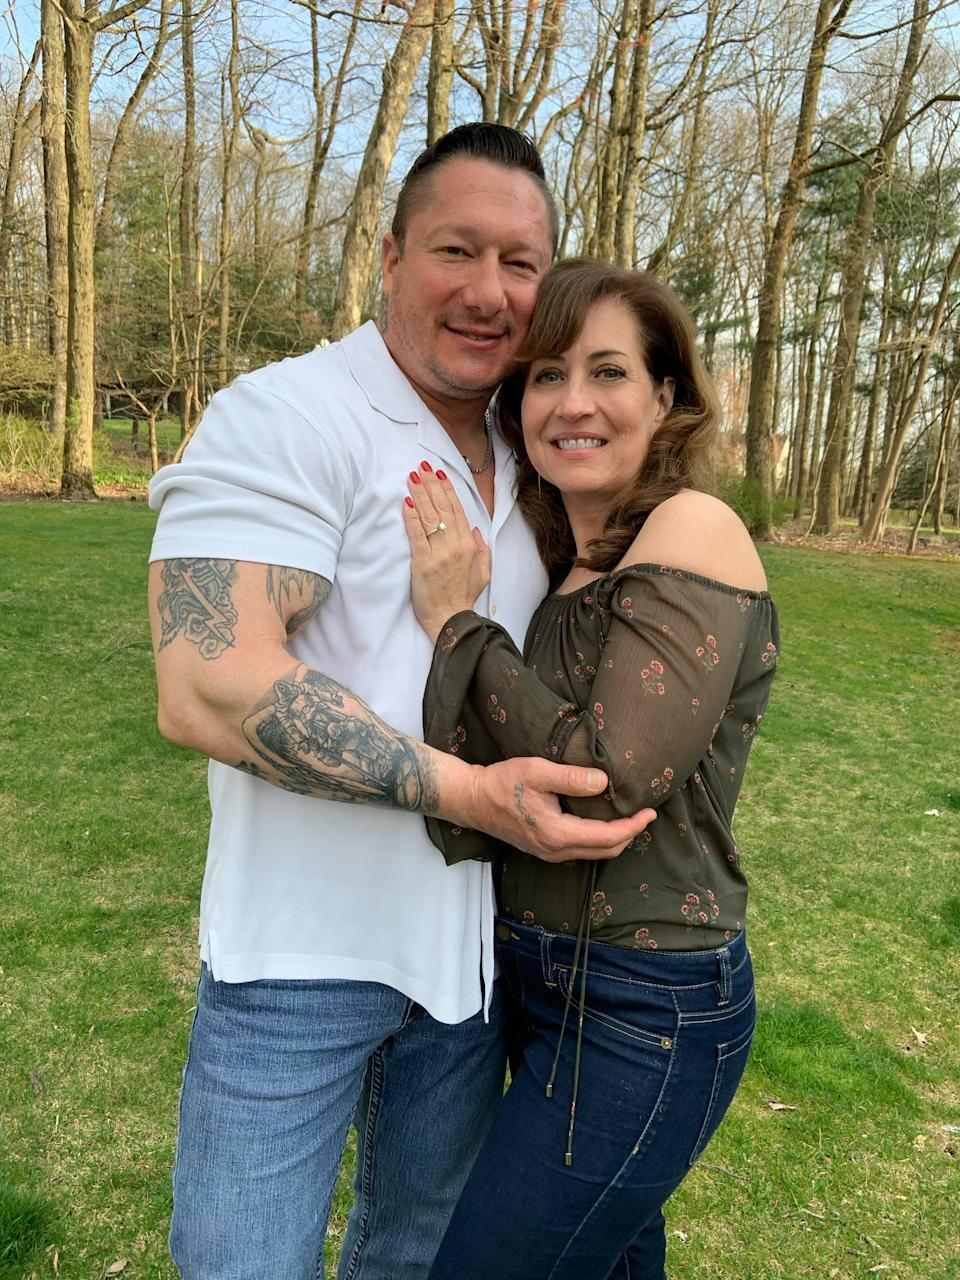 """Police Lieutenant Danny Sienkiewicz decided to propose to his girlfriend Beth Soloman a few months earlier than planned due to the coronavirus pandemic:  """"I started to get really scared, to the point where I believed it was not a matter of if I'm going to contract coronavirus, but when,"""" he says."""